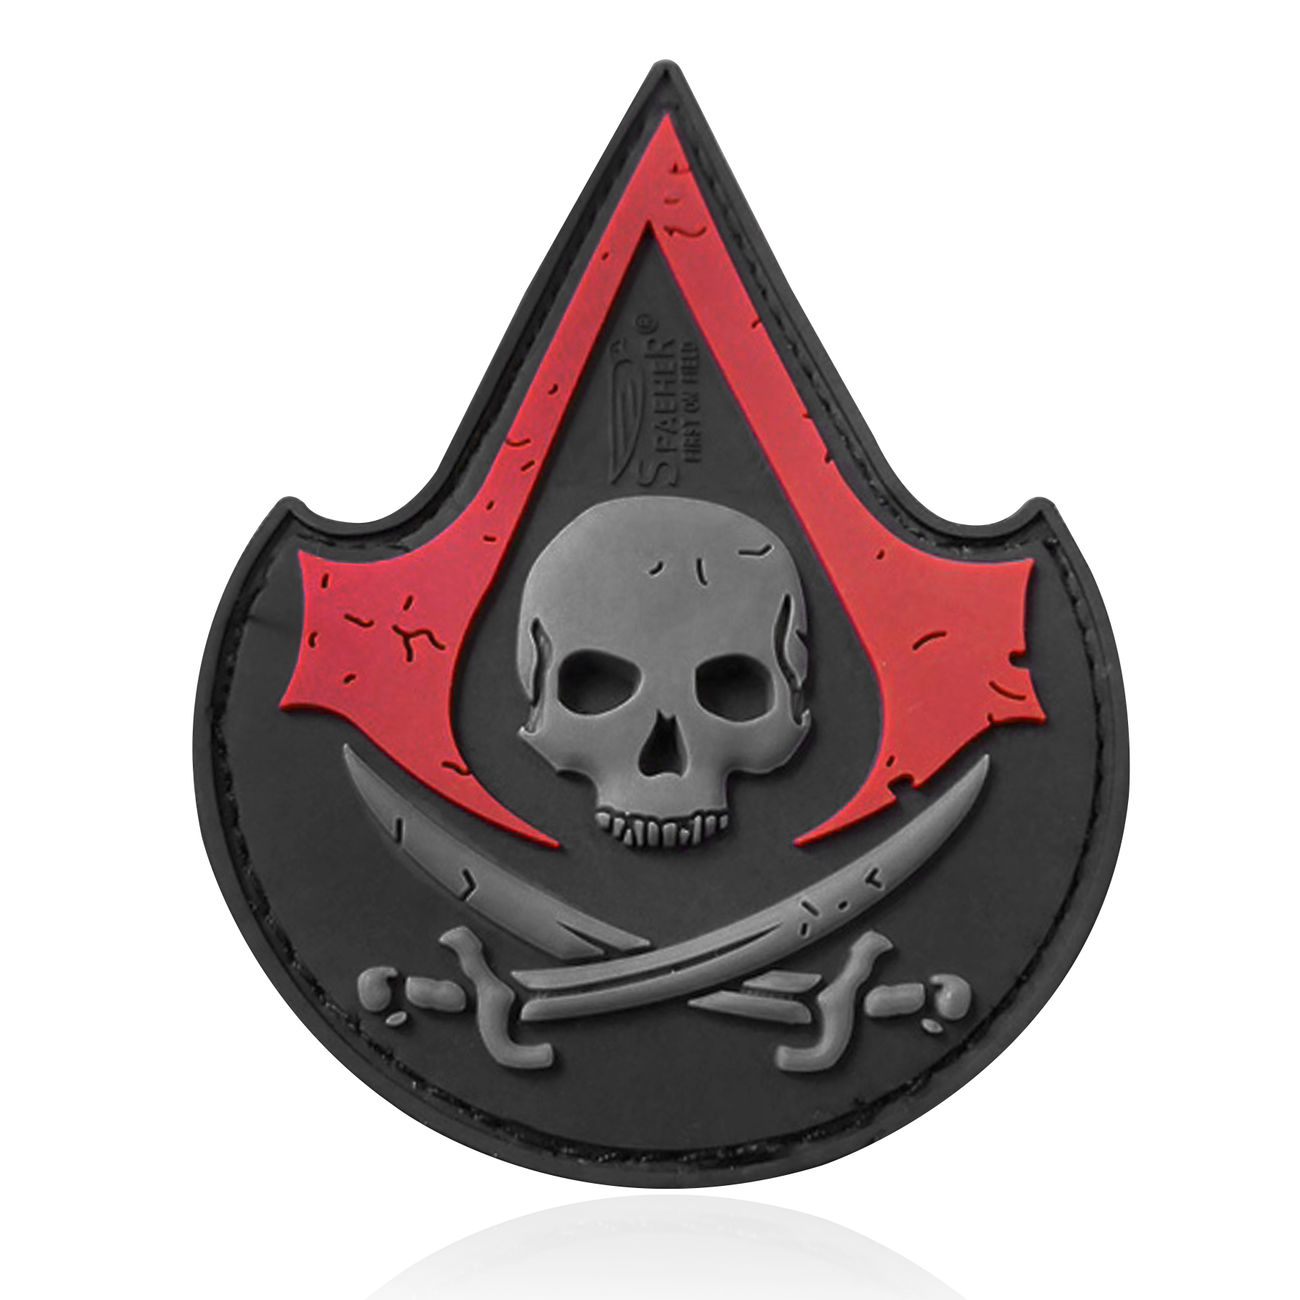 JTG 3D Rubber Patch Assasin Skull blackmedic 0